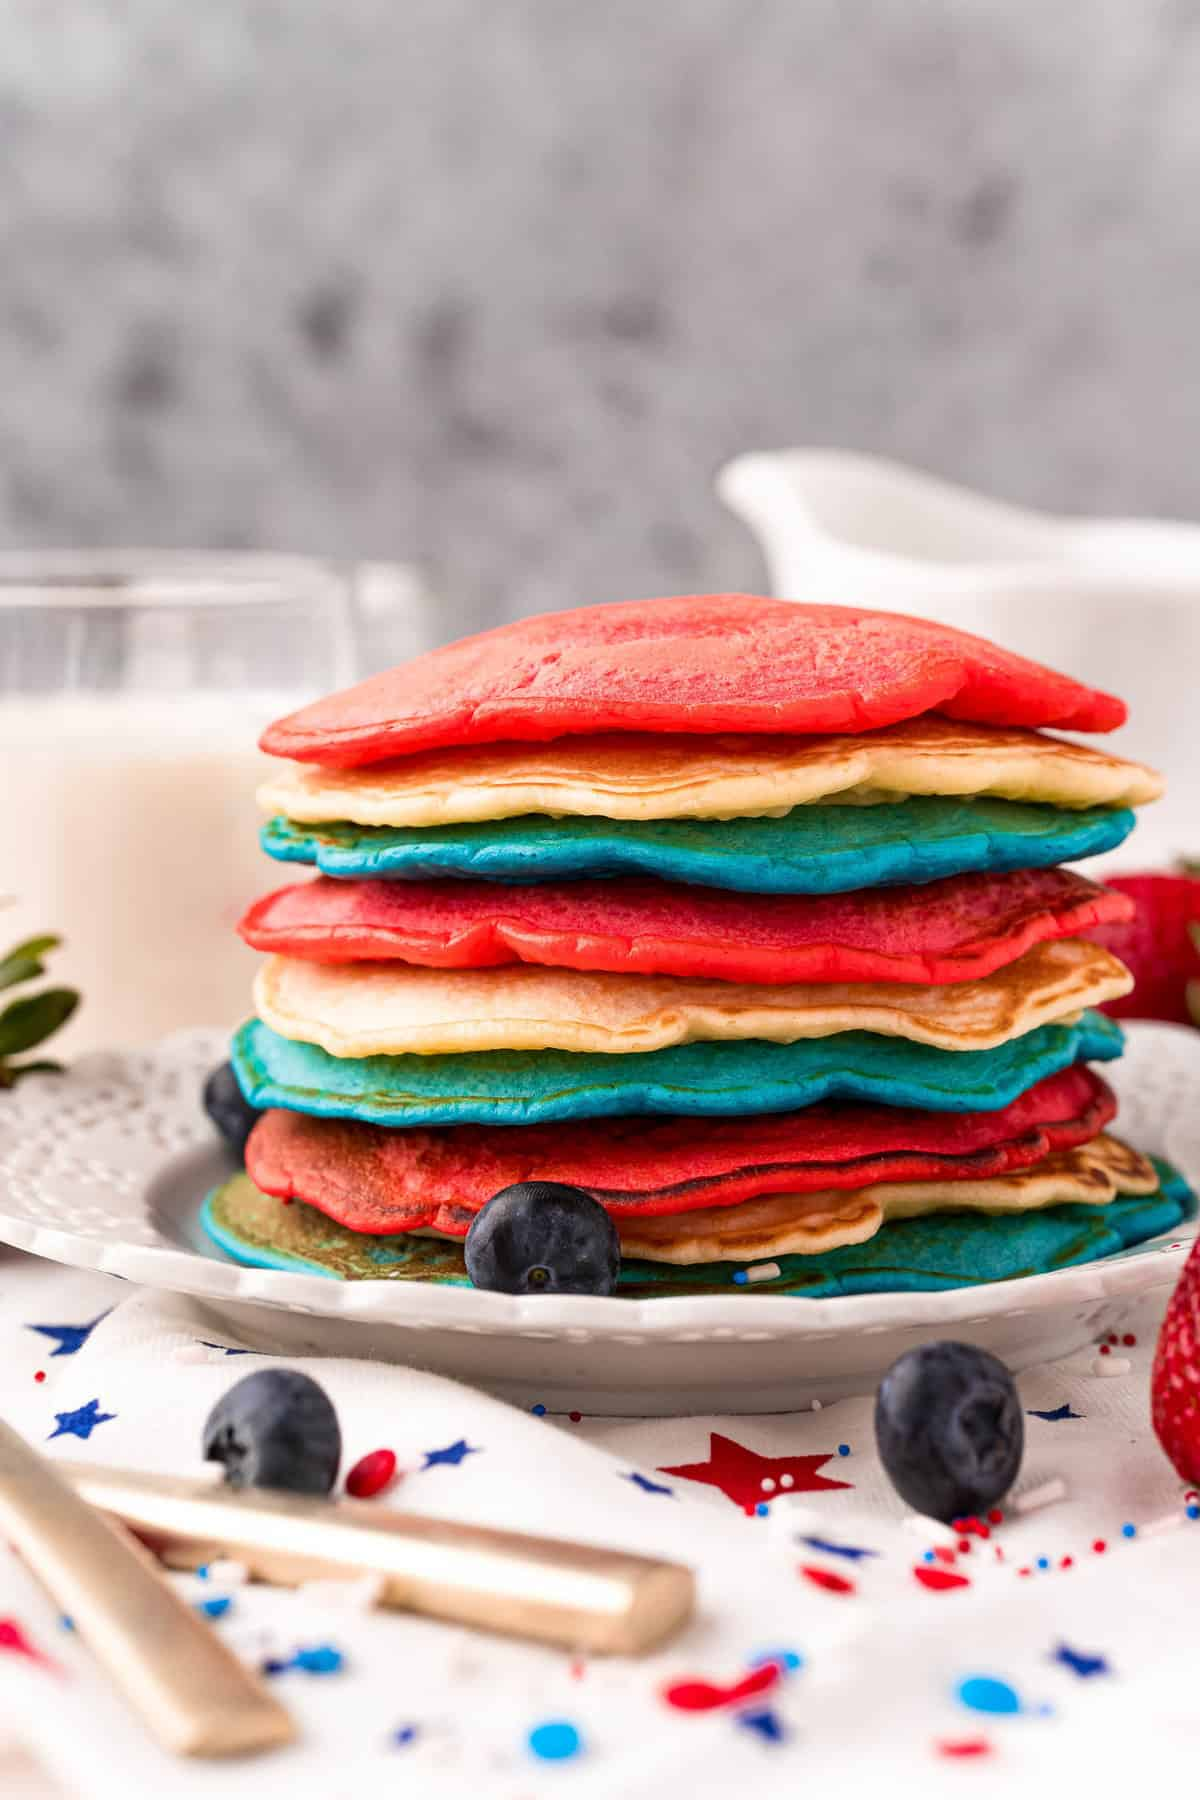 Patriotic pancakes with no toppings, stacked on a white plate.